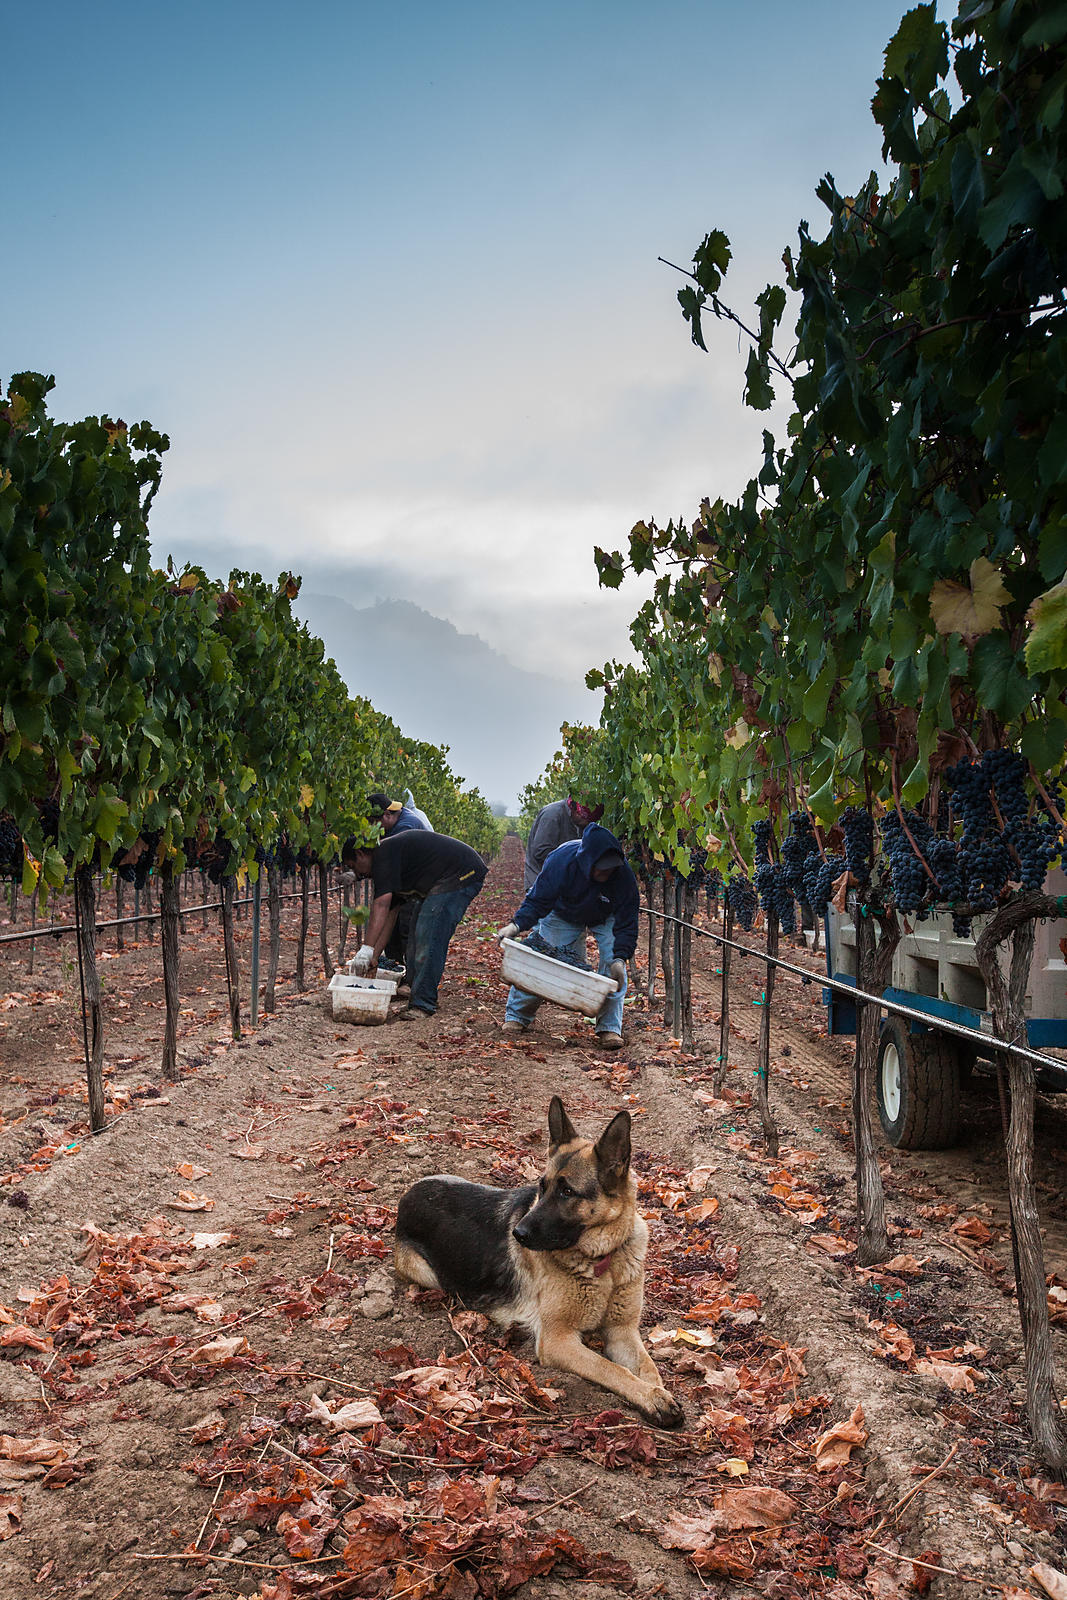 A dog keeps watch in a vineyard as men harvest grapes. Wine harvest photography by Jason Tinacci